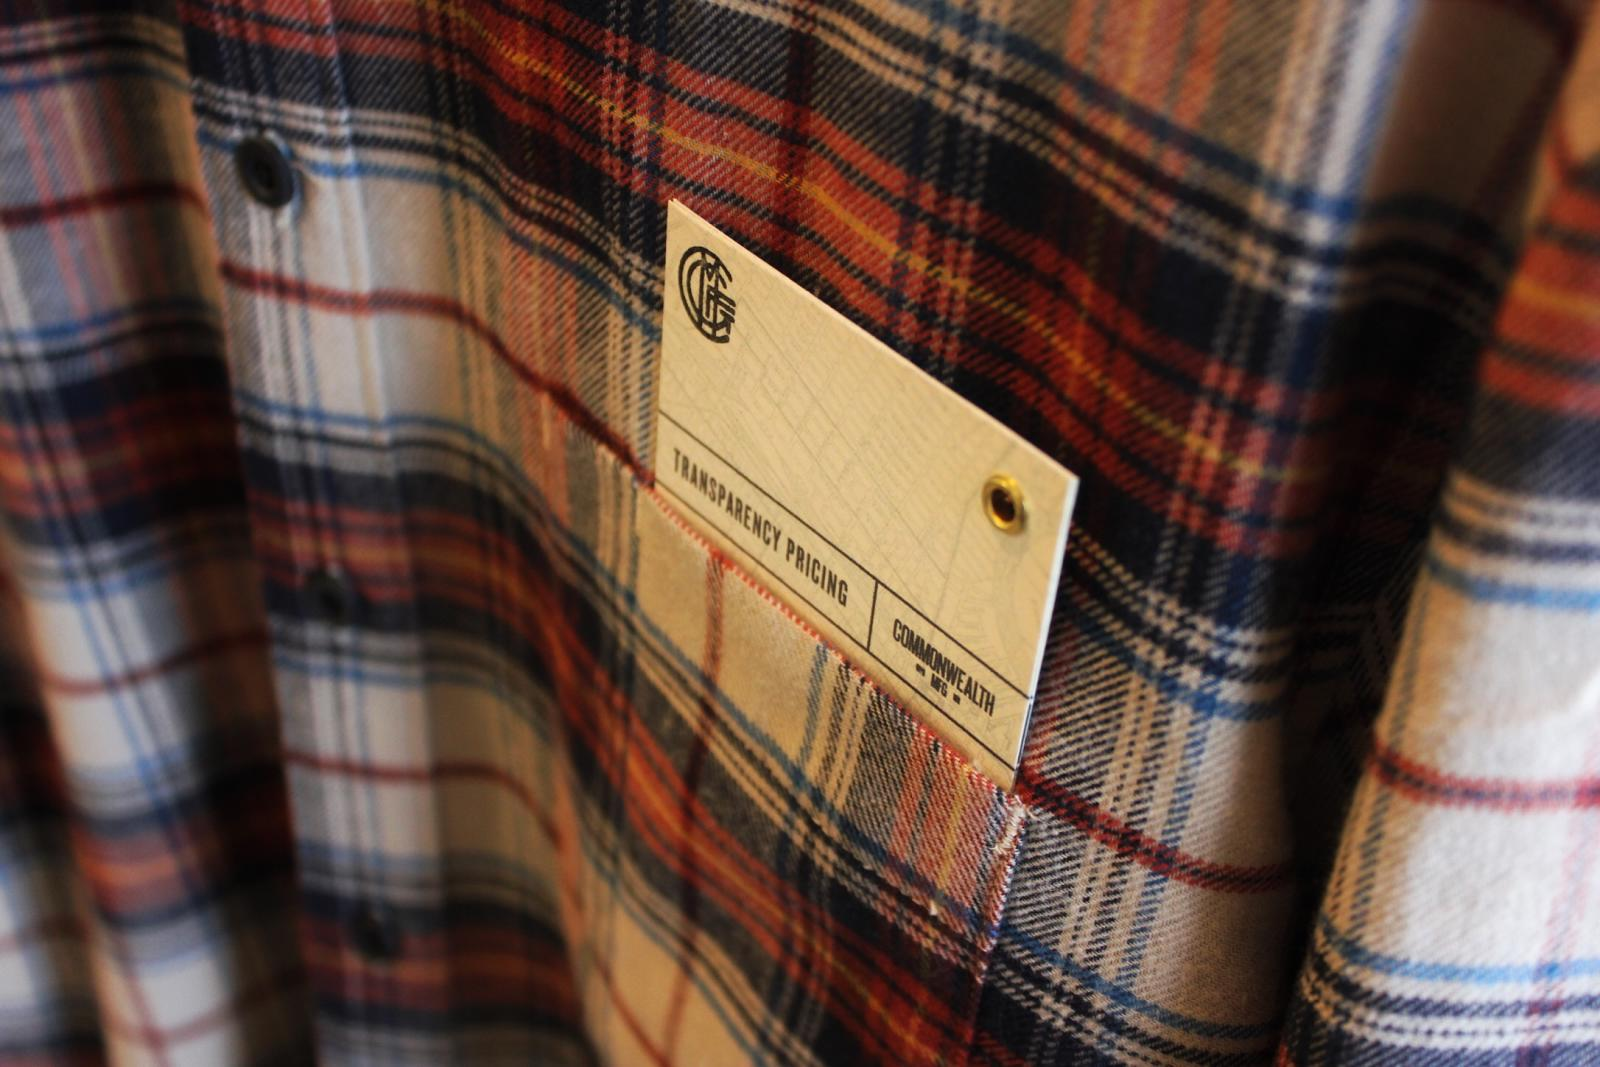 Transparency cards on every shirt.